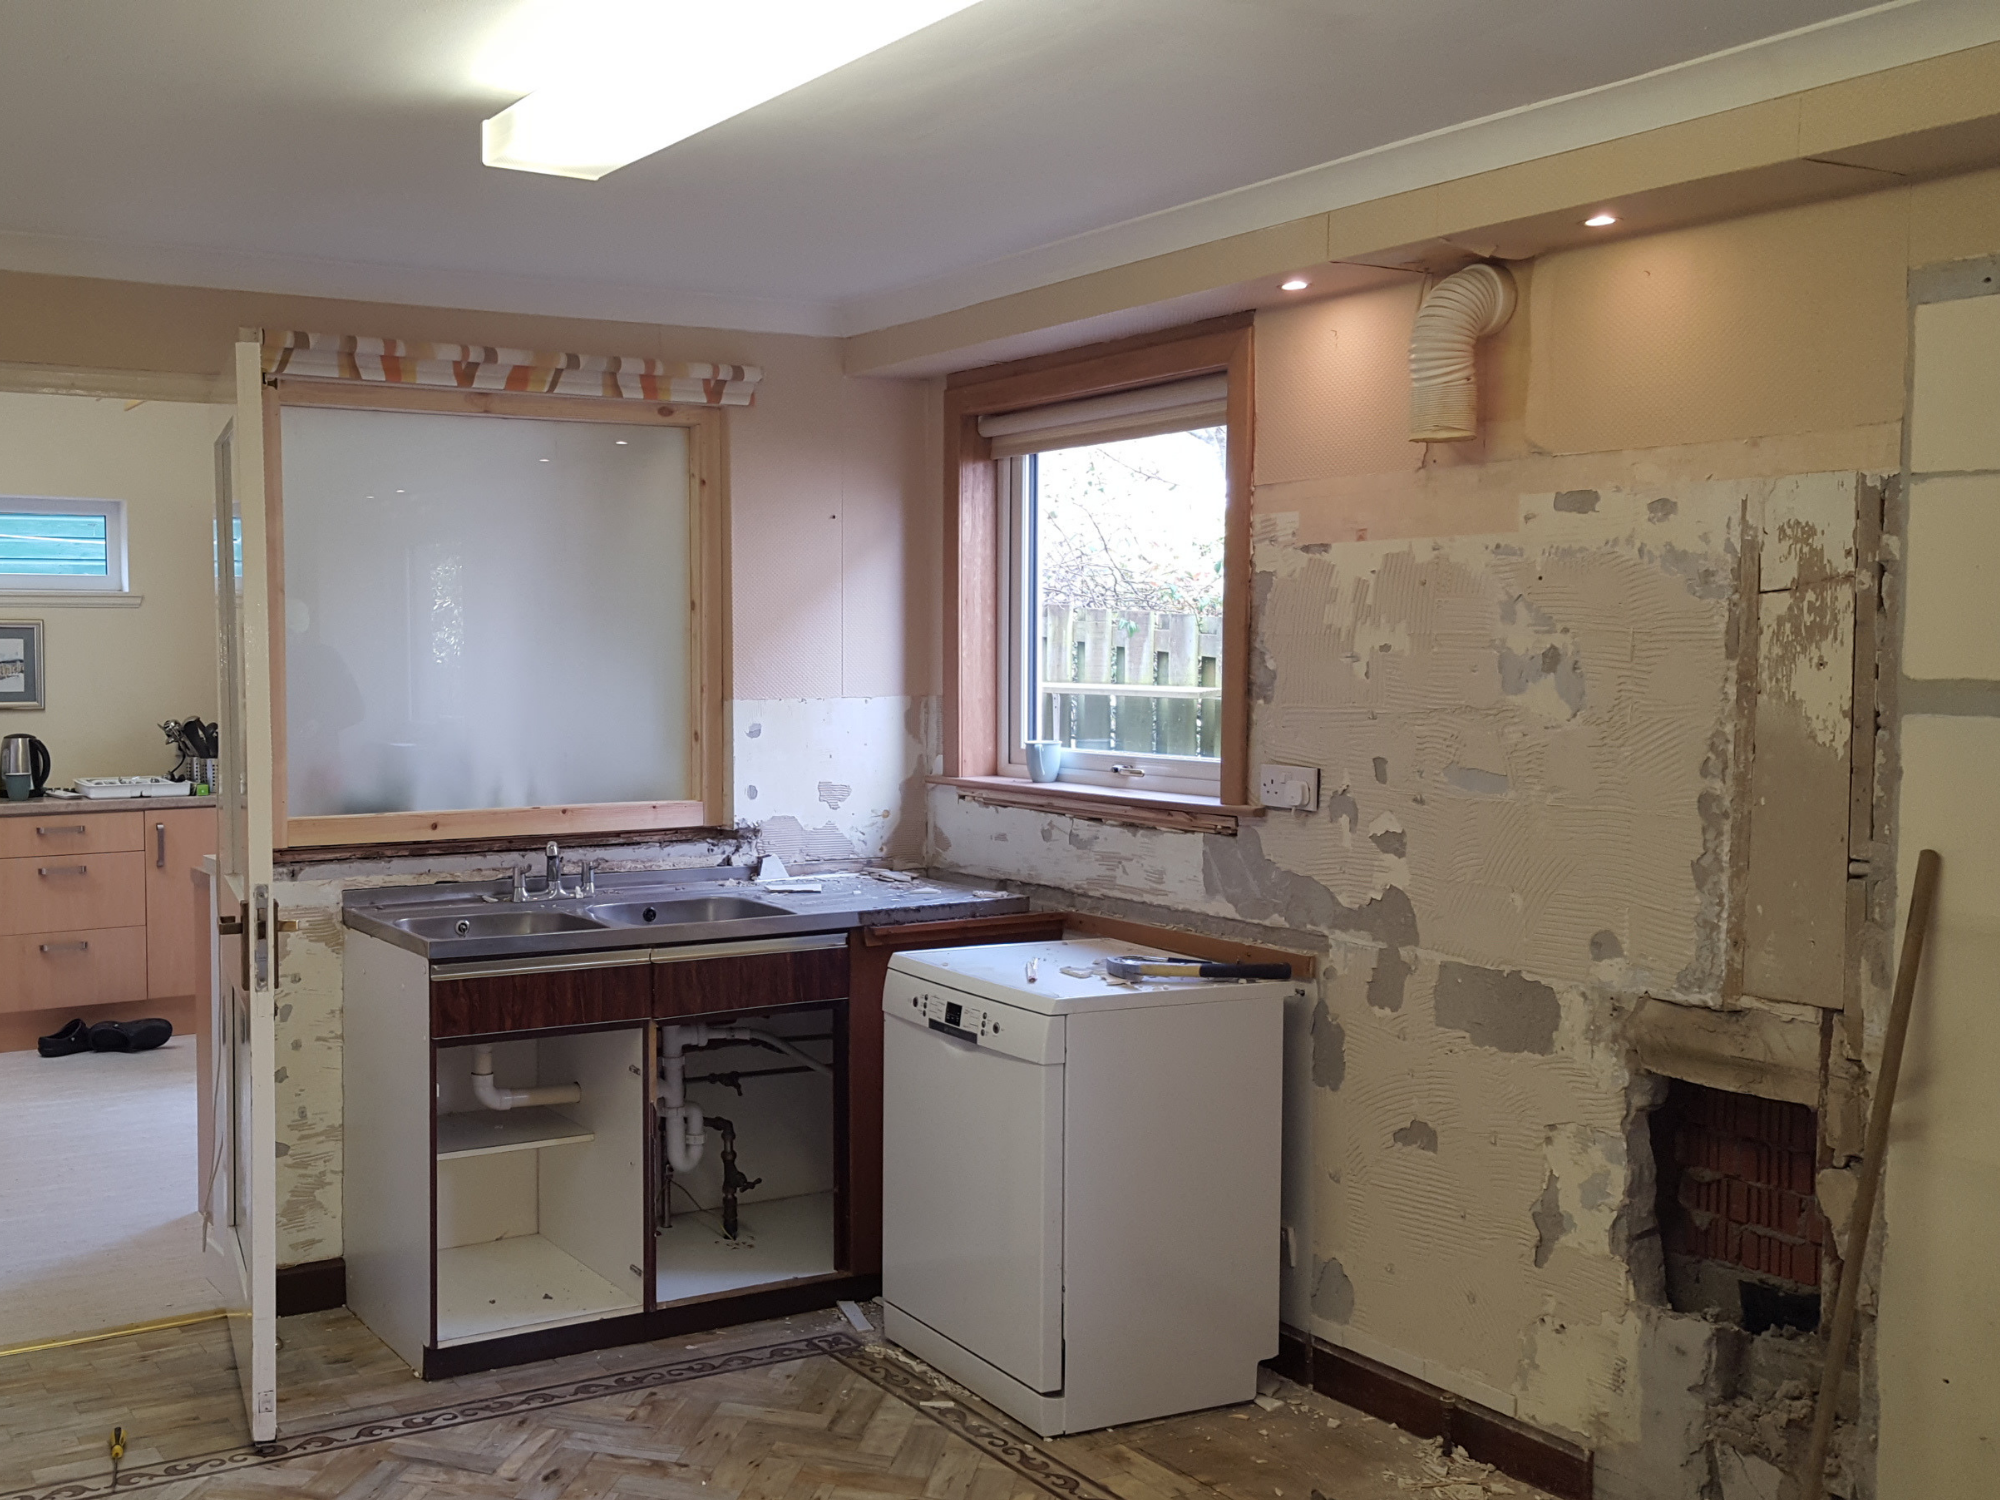 Kitchen during the refit stage with everything ripped out